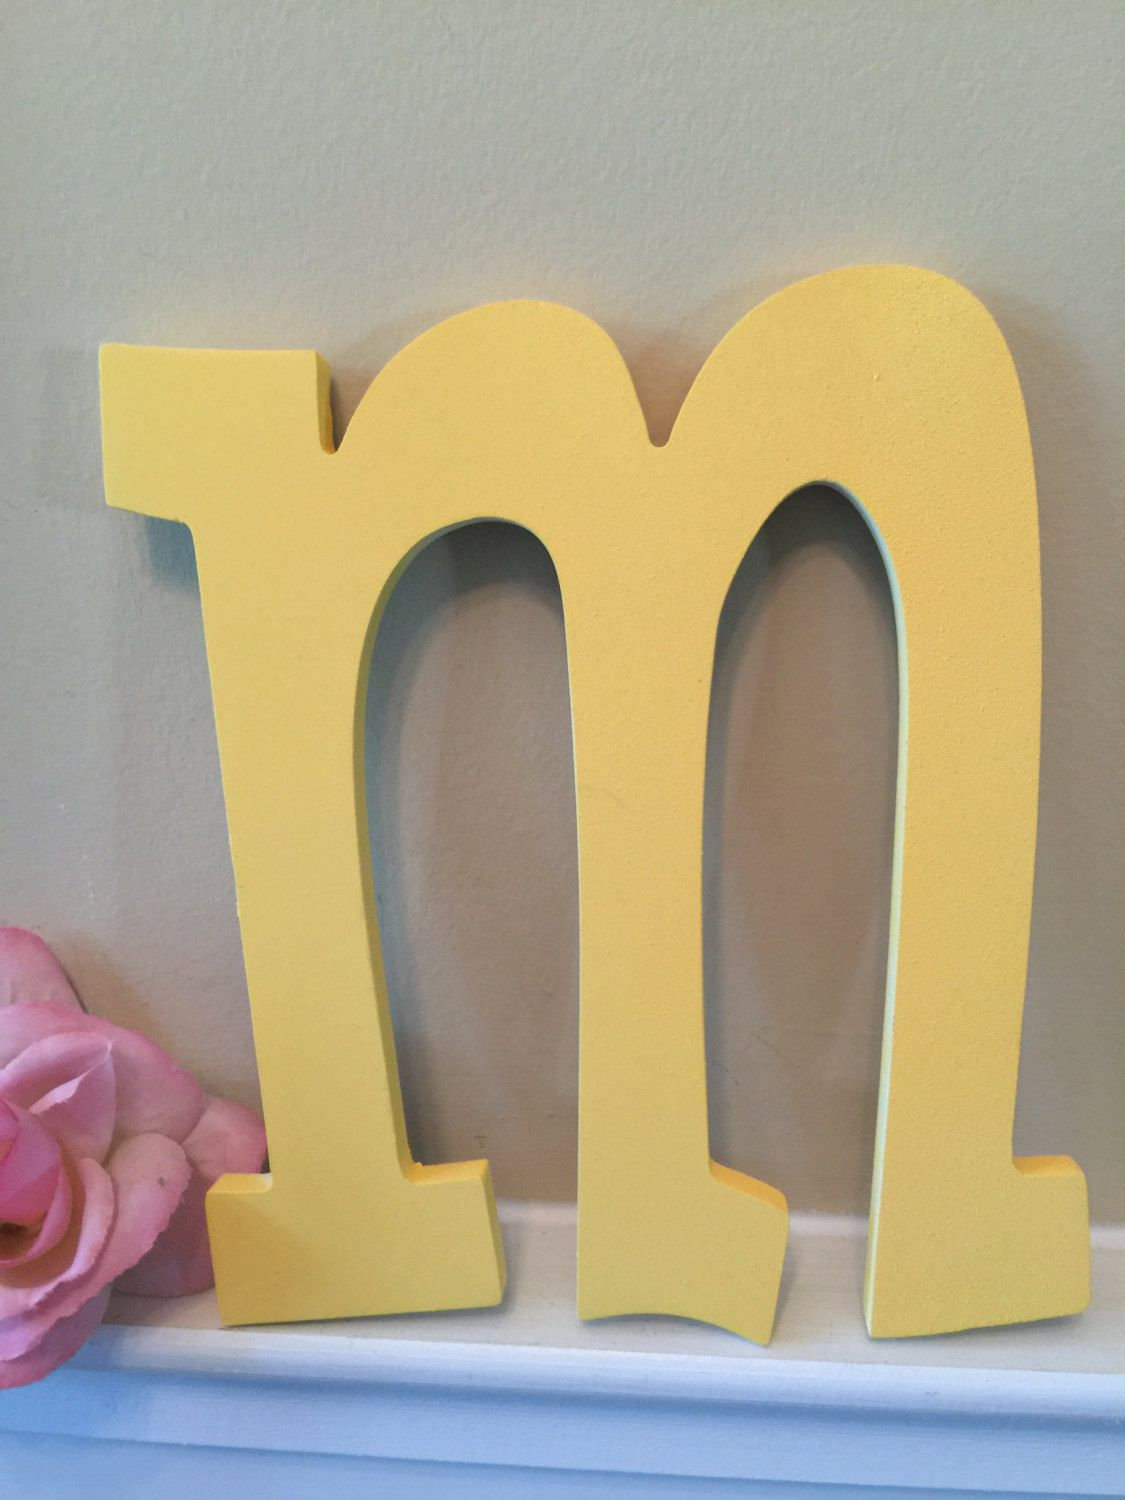 Dorable Initials Wall Decor Collection - Wall Art Collections ...